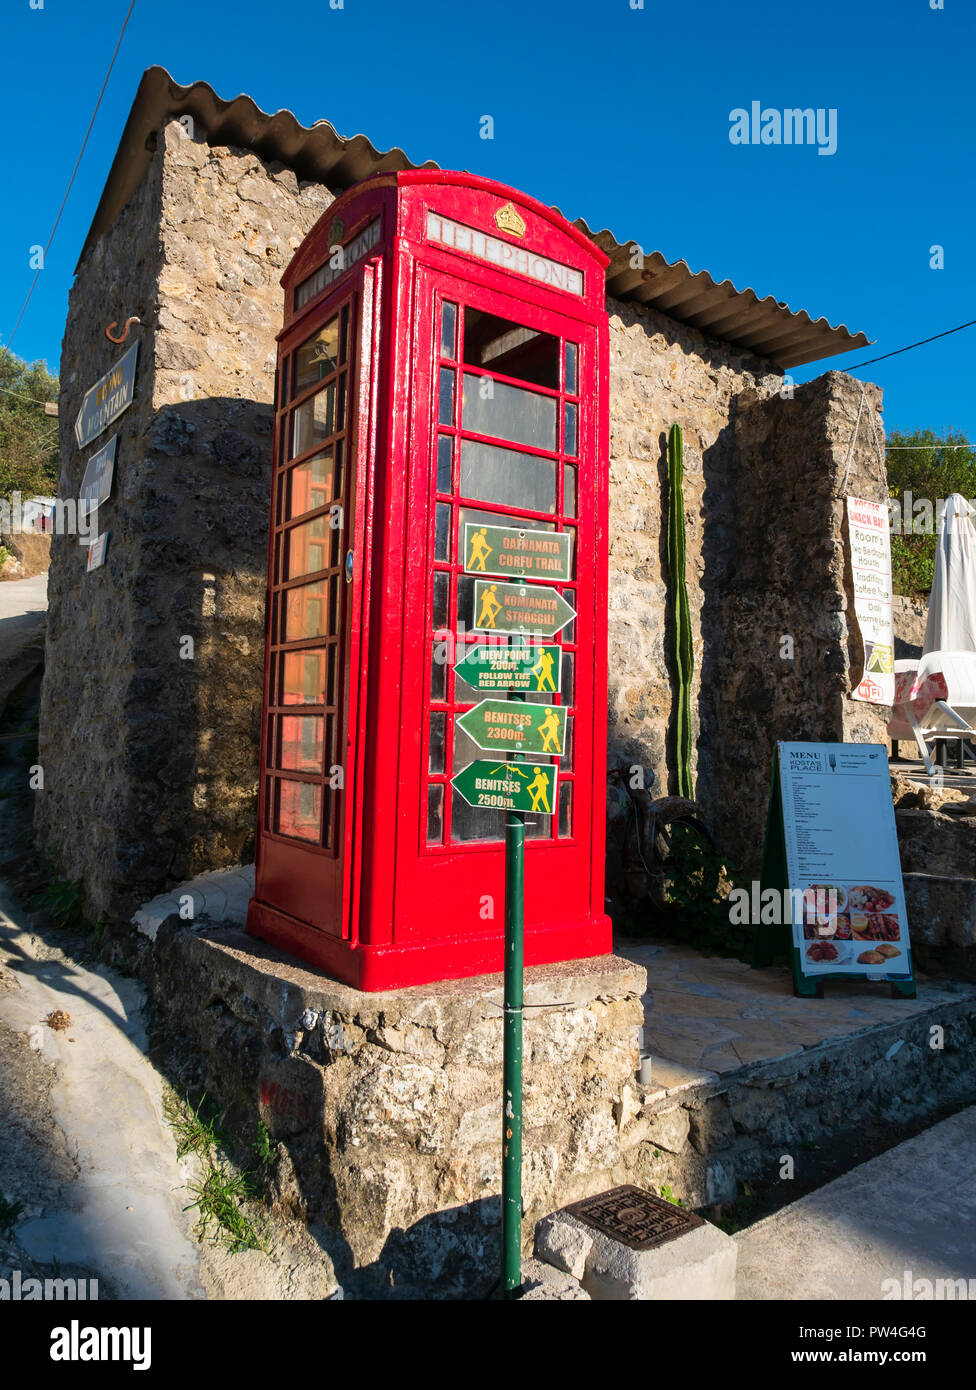 Traditional red British phone box on the Corfu Trail in the village of Dafnata, Corfu, Ionian Islands, Greece. - Stock Image